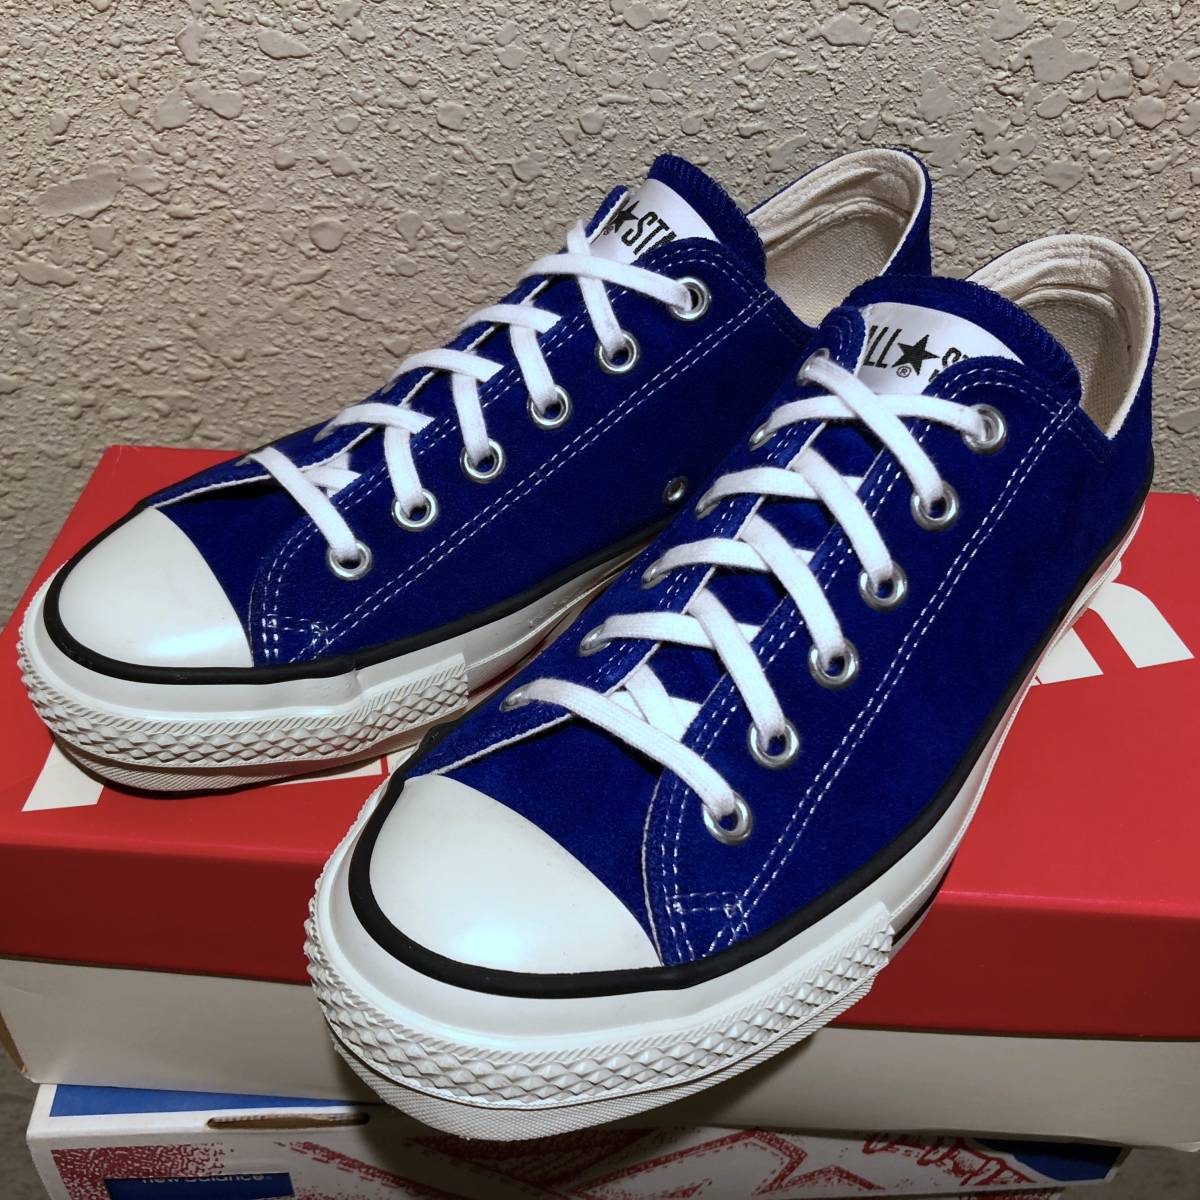 f54438298e69 中古 1回着用のみ 超美品 CONVERSE ALL STAR SUEDE AS J OX ROYAL BLUE ...